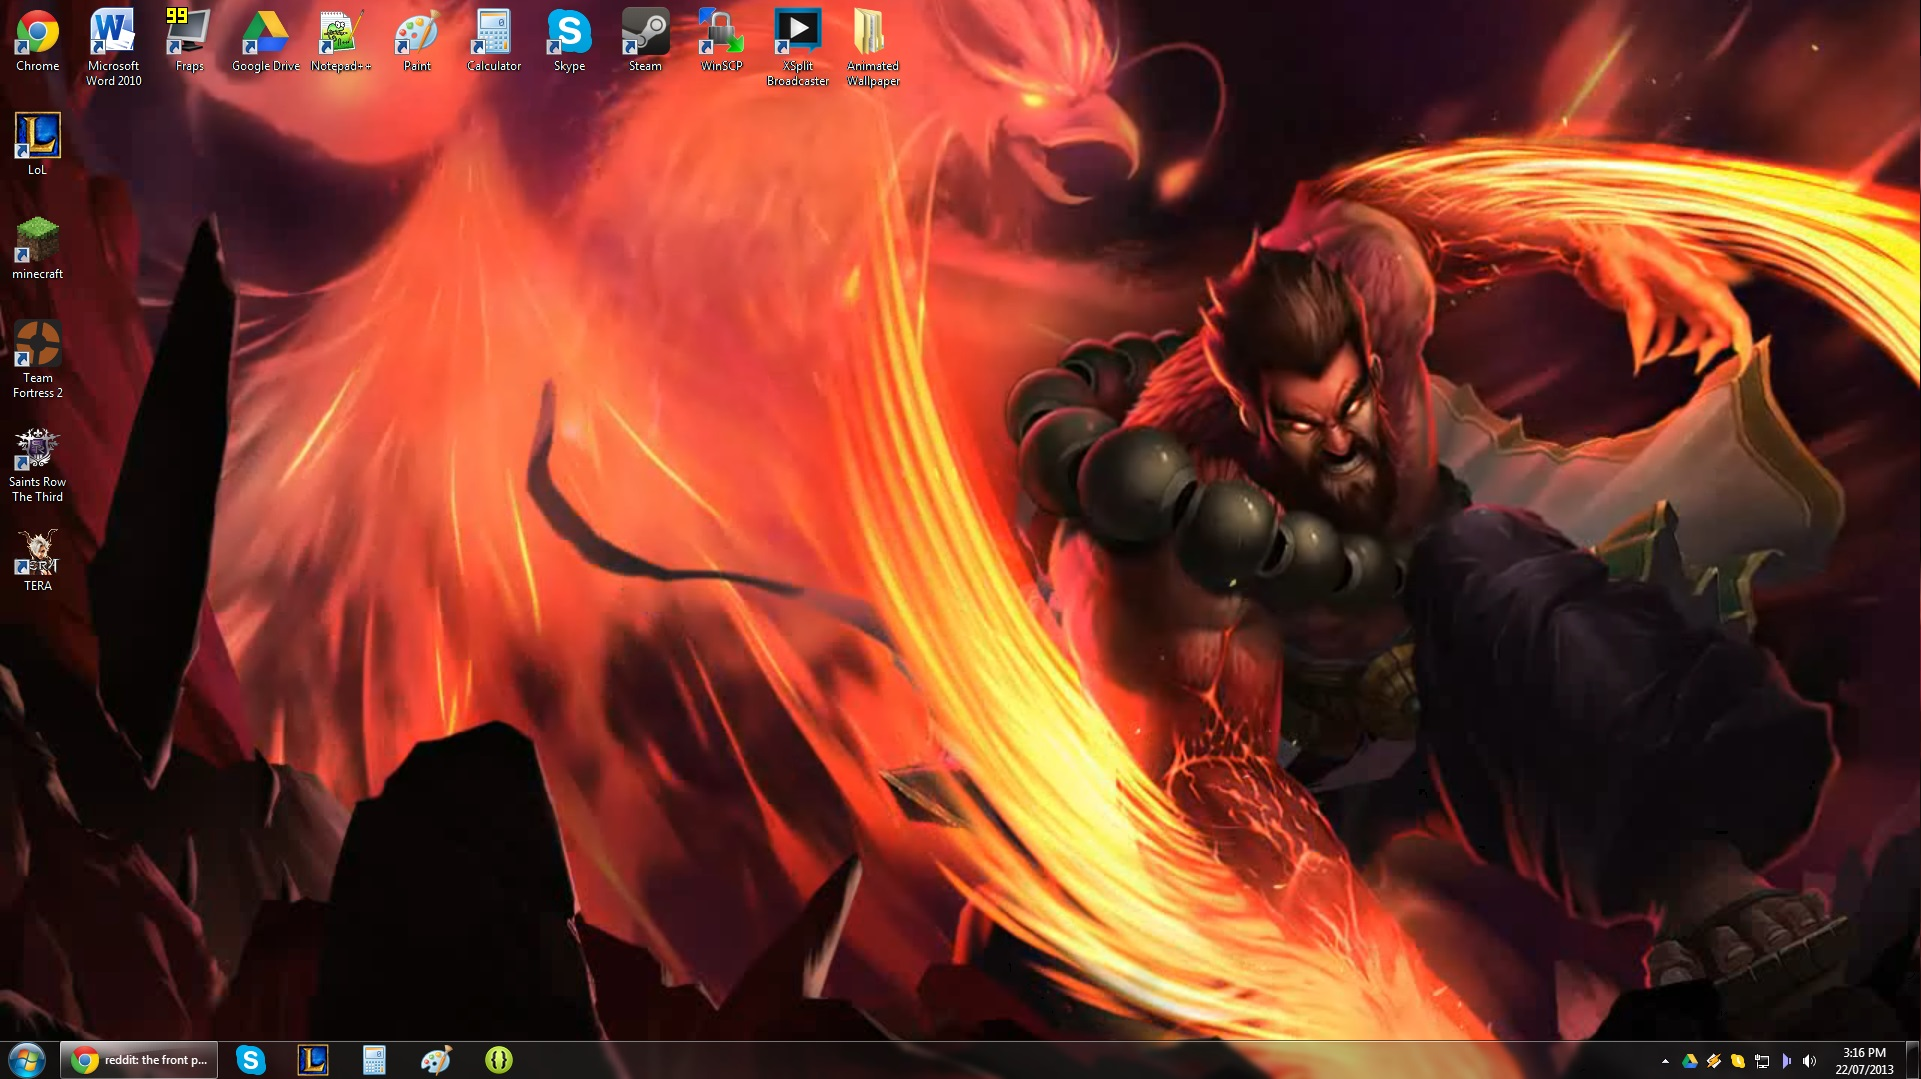 Download League Of Legends Animated Wallpaper Gallery